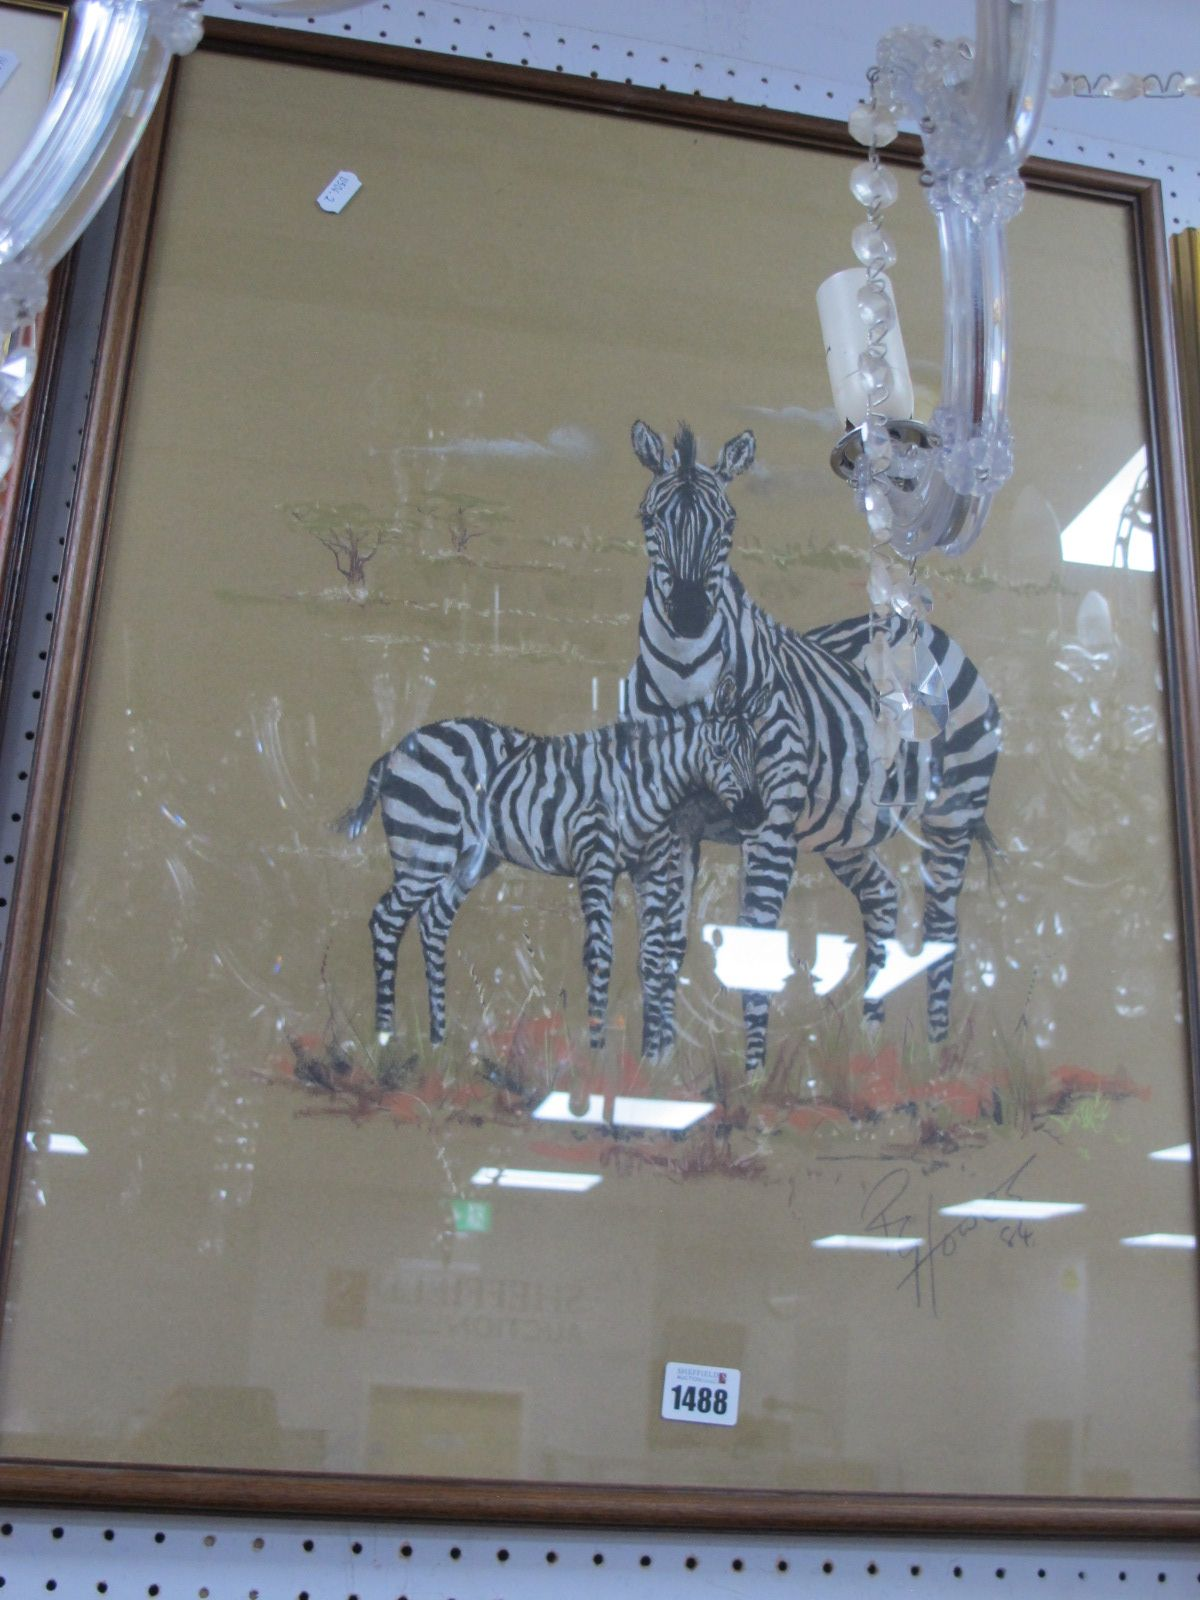 R.G Howes (Norfolk Artist) Zebra and foal, pastel drawing, signed and dated '84, 65.5 x 50cm.